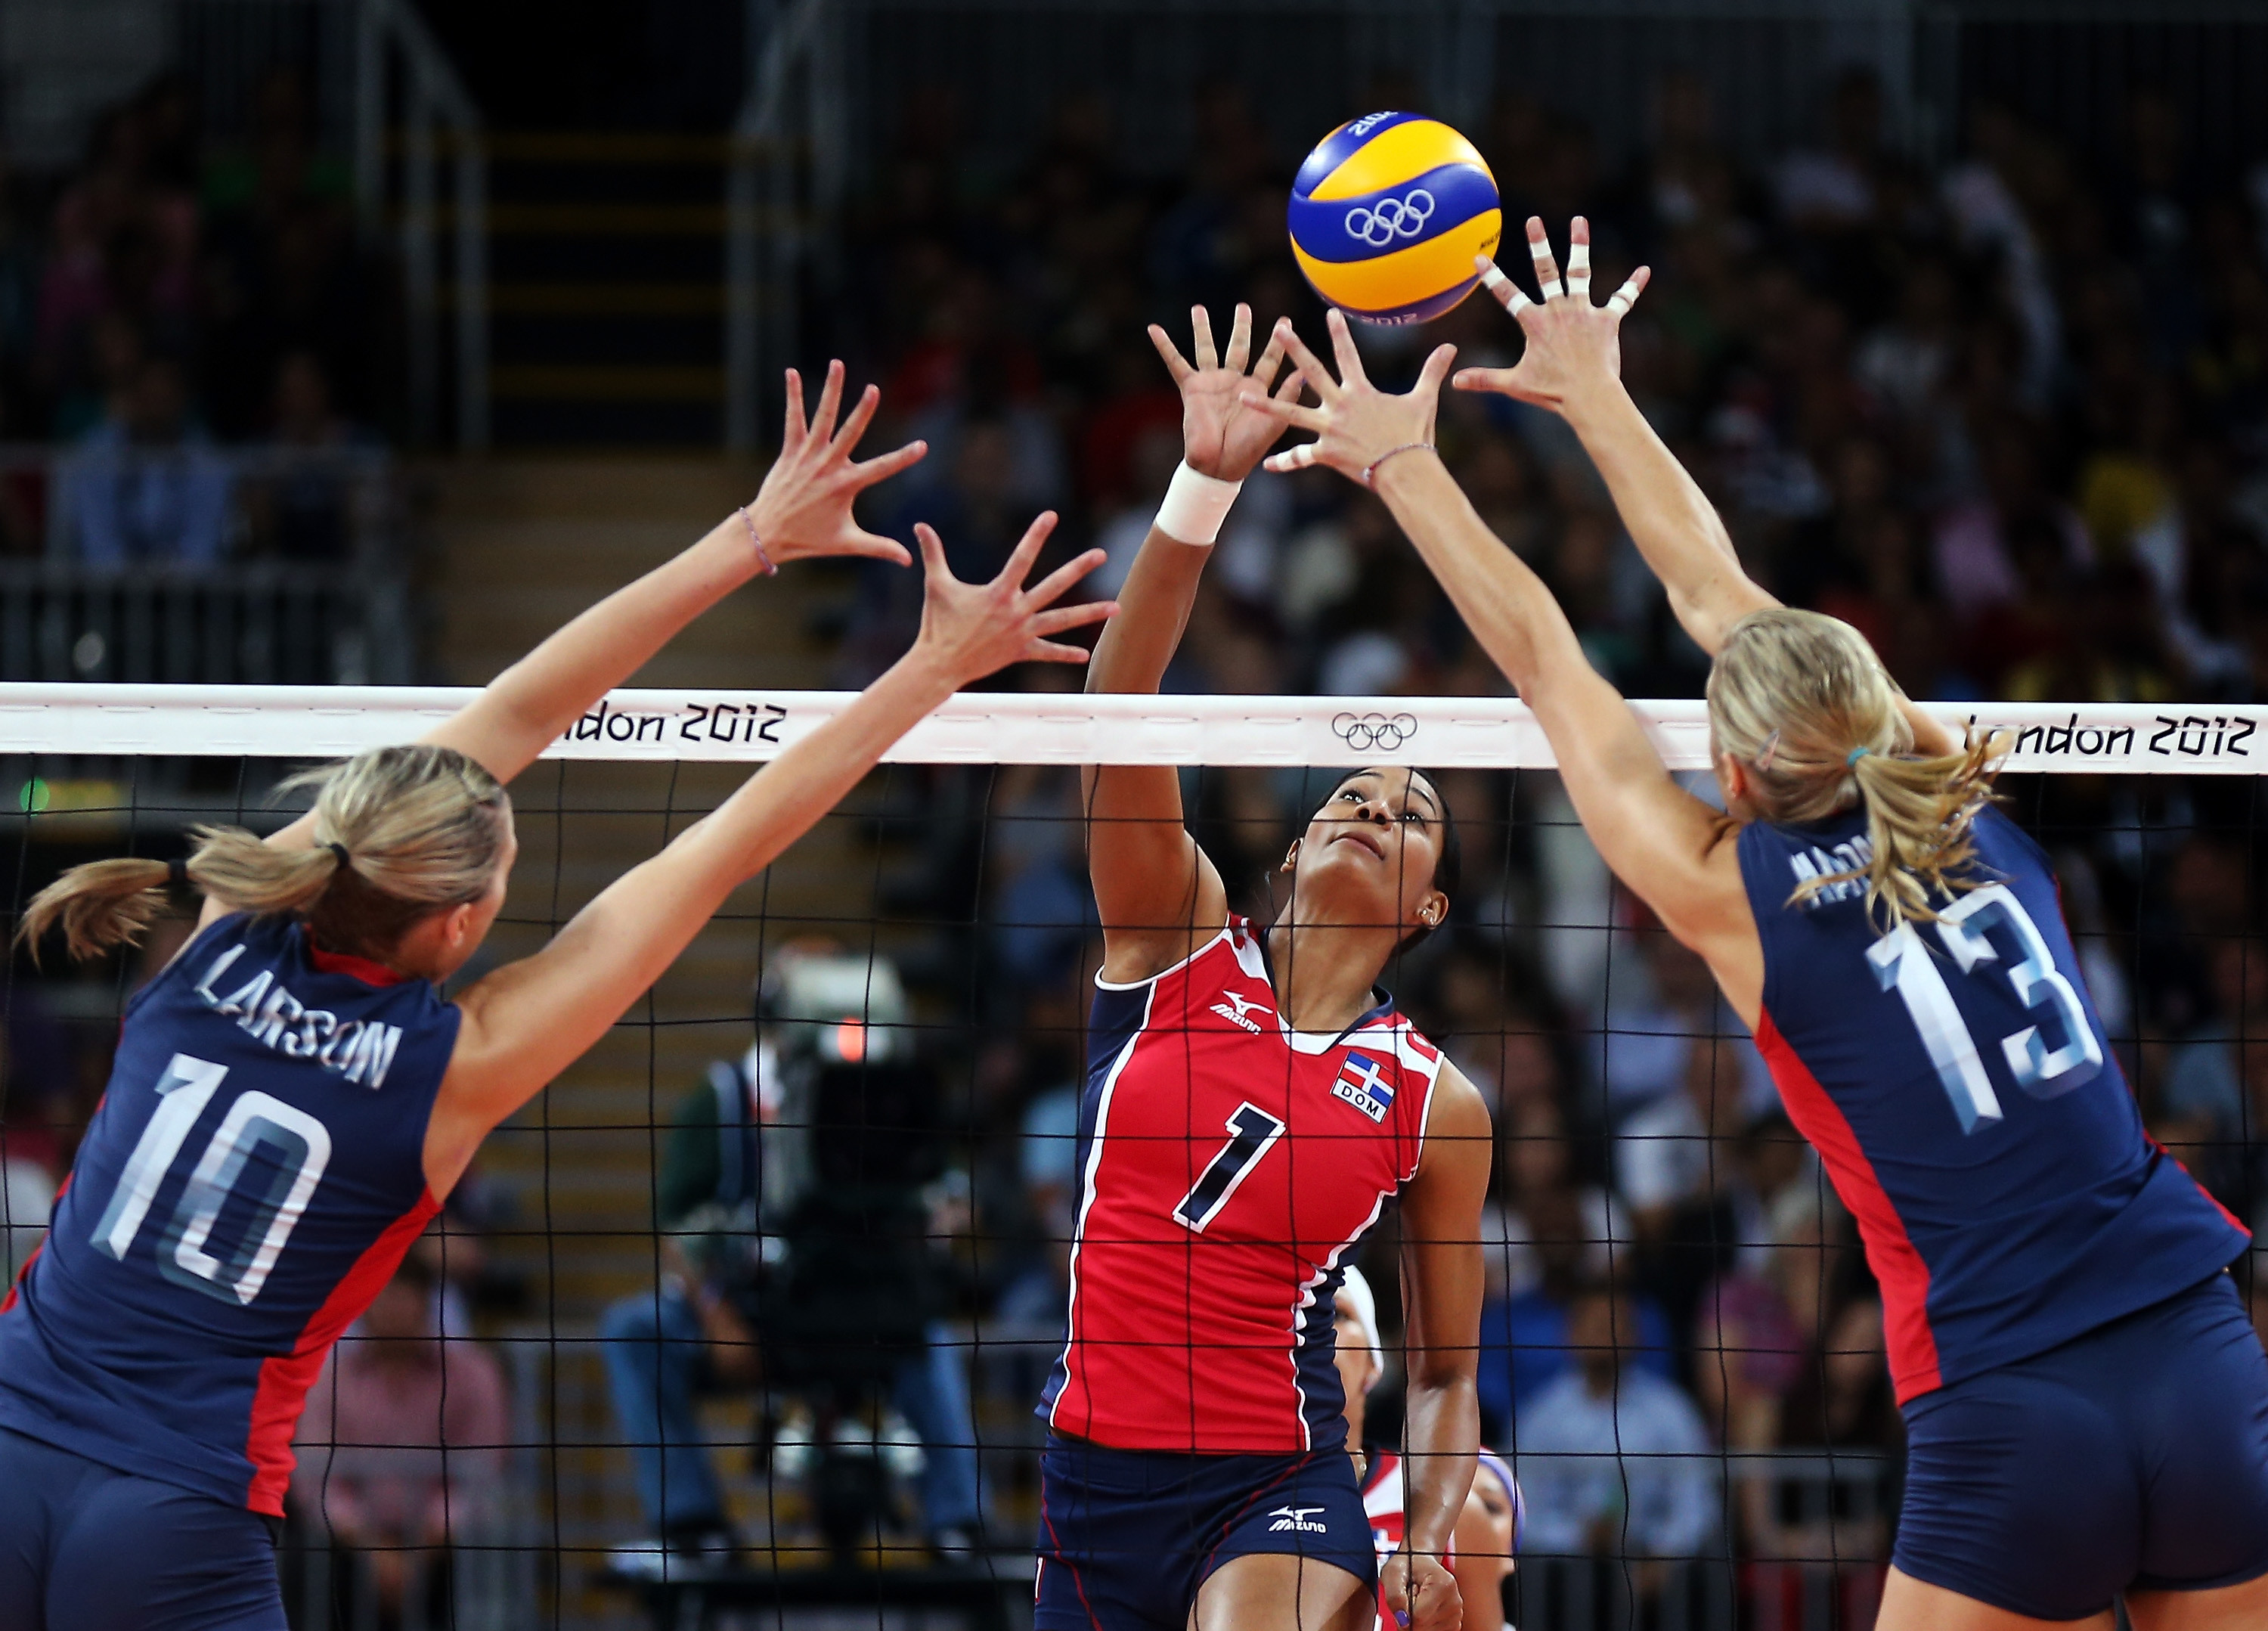 3000x2157 VolleyBall Wallpaper Find best latest VolleyBall Wallpaper for